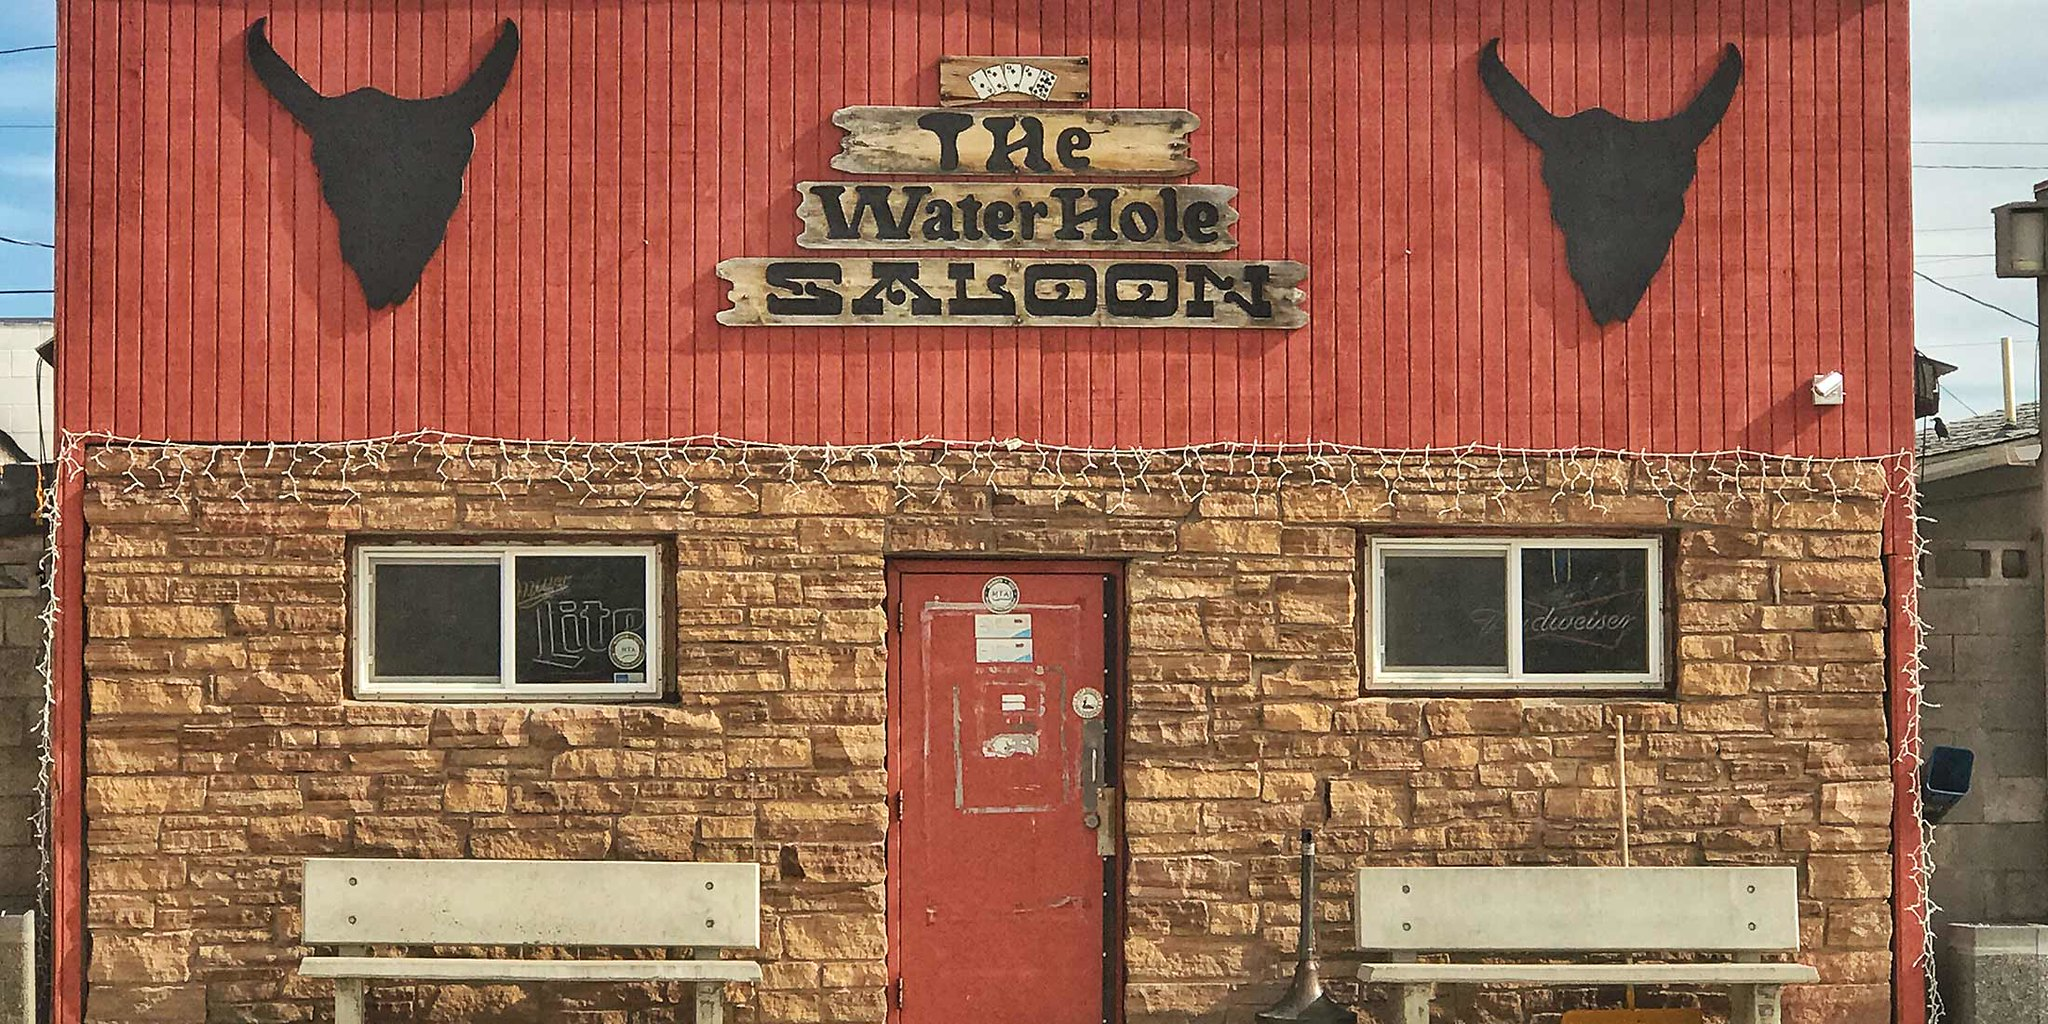 The Water Hole Saloon is open daily in Stanford, Montana - Judith Basin County.